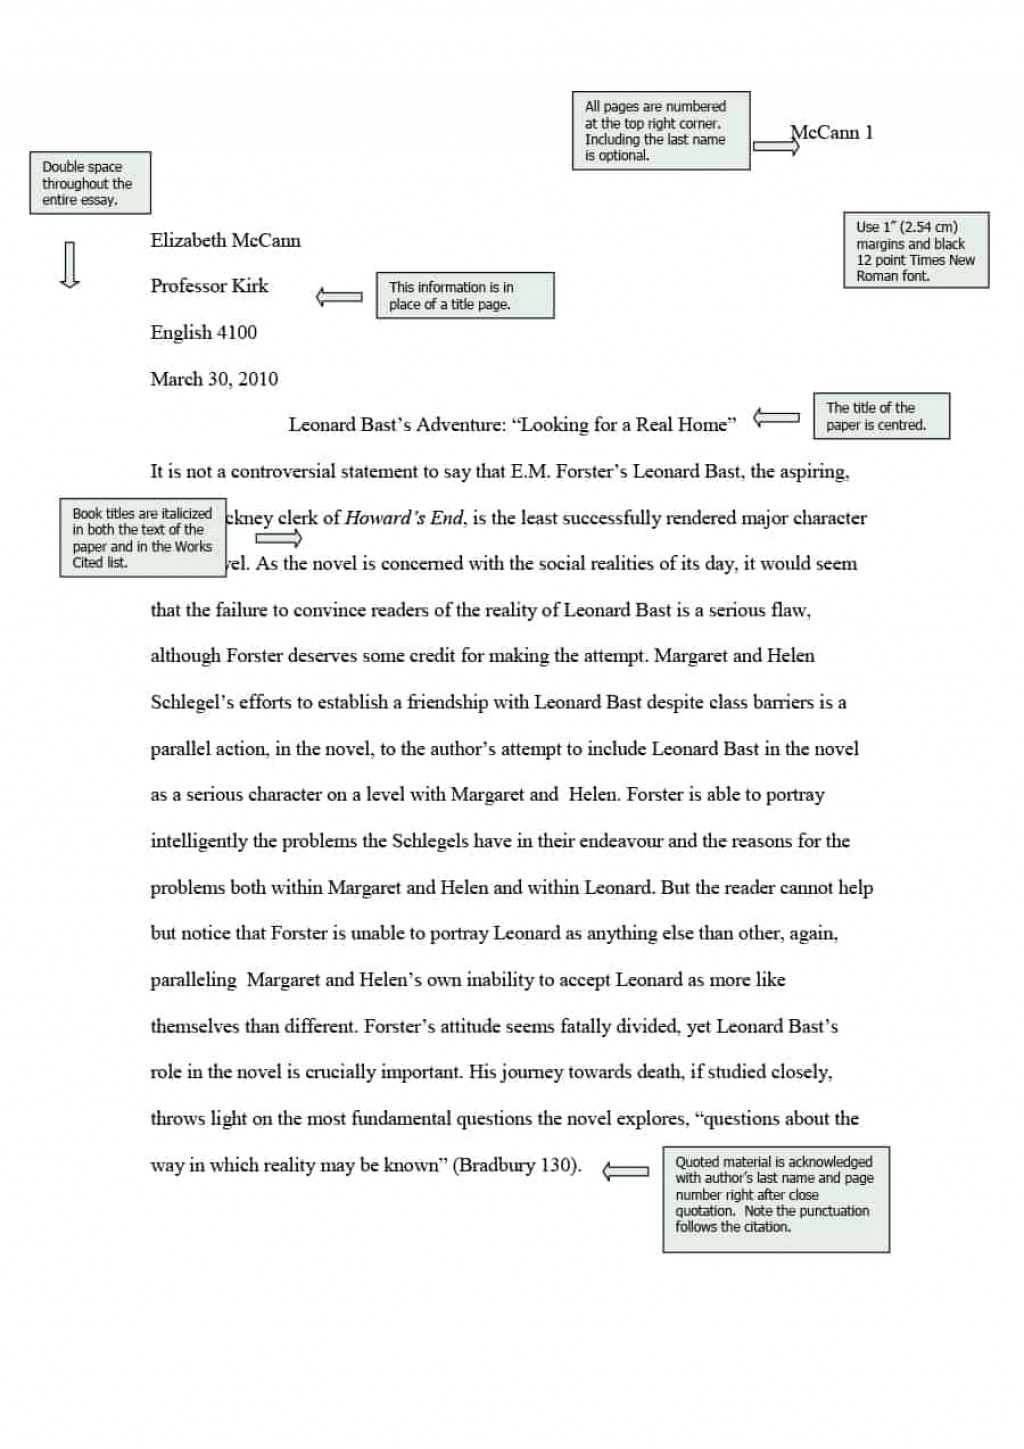 005 Essay Format Mla Template Awful Examples Citation Generator Outline Large